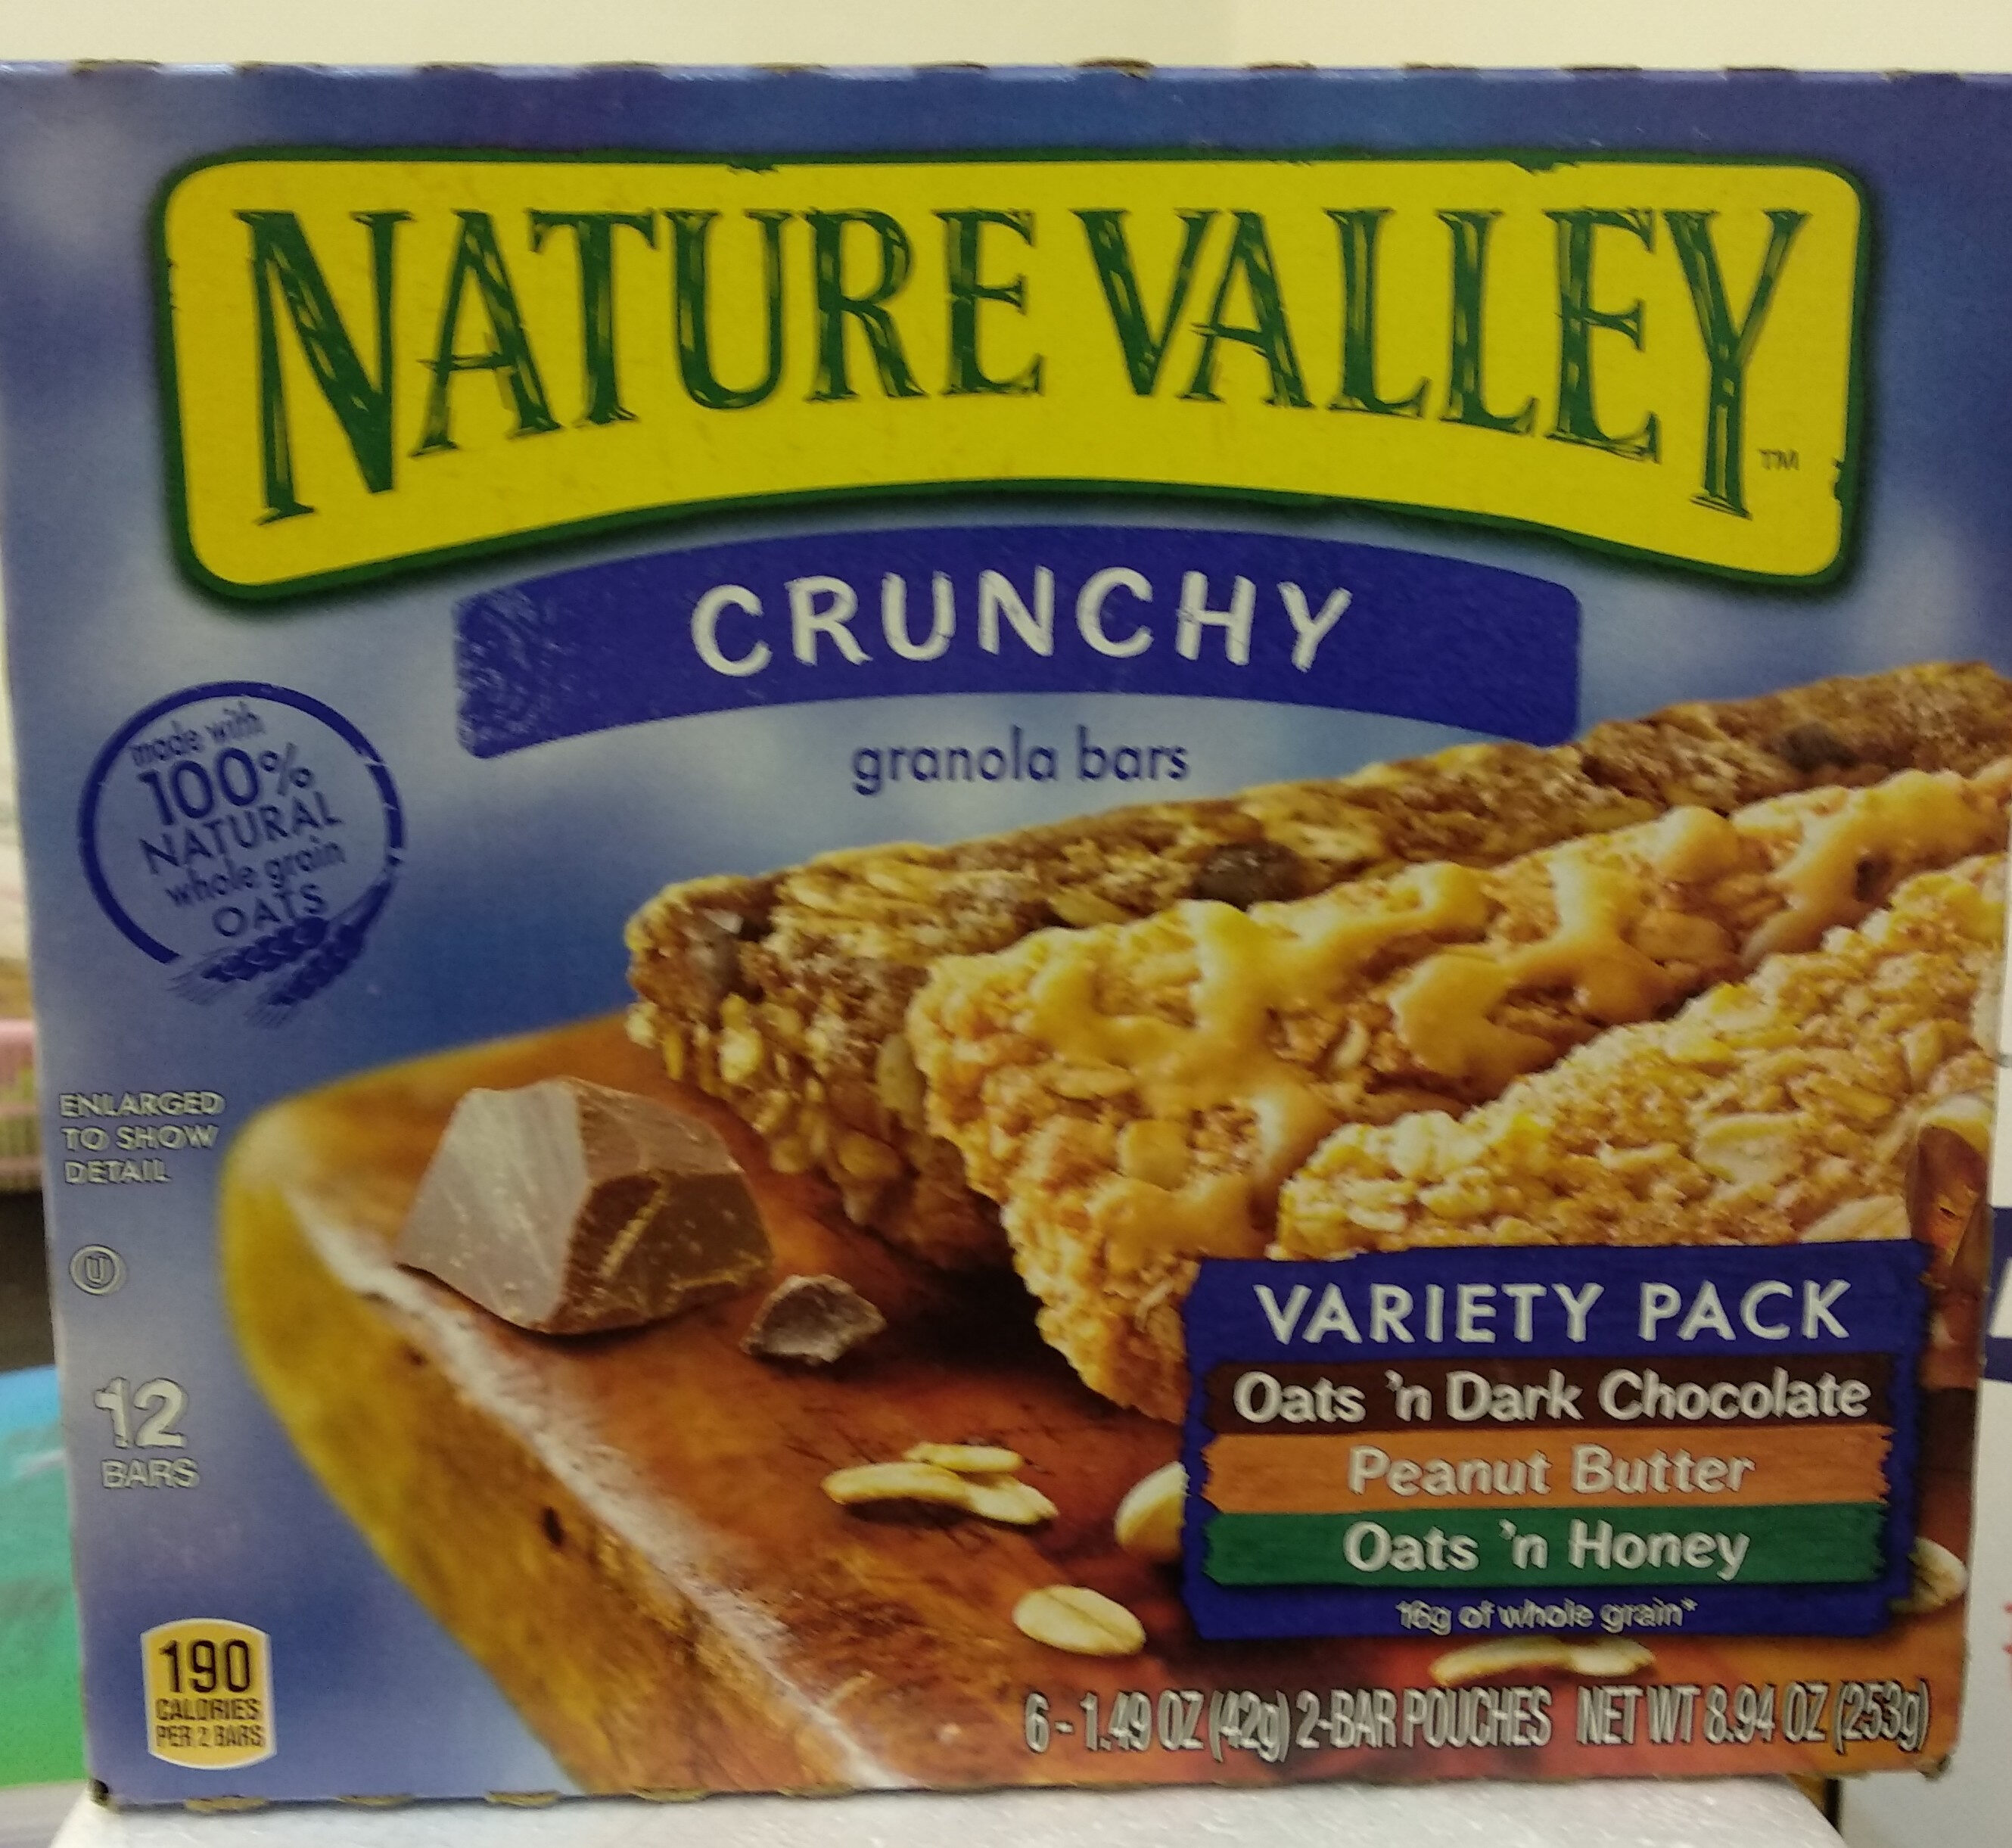 Nature Valley Crunchy Granola Bars Variety Pack - 6 CT - Product - fr